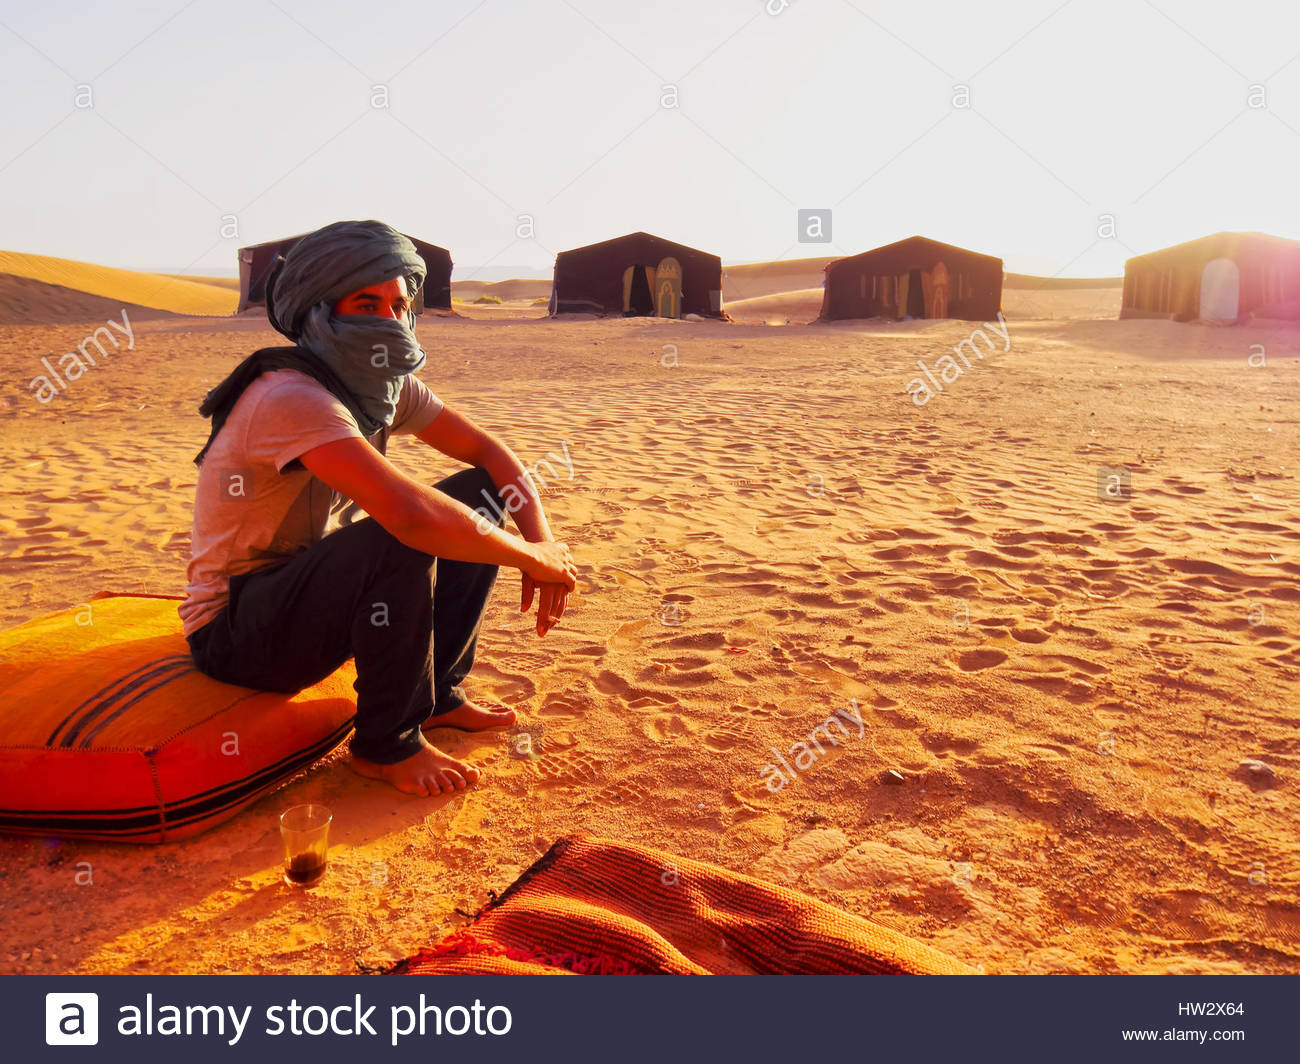 ZAGORA DESERT, MOROCCO, MAY 04: Unidentified Berber man sitting in front of the tent on the Zagora Desert in Morocco, - Stock Image